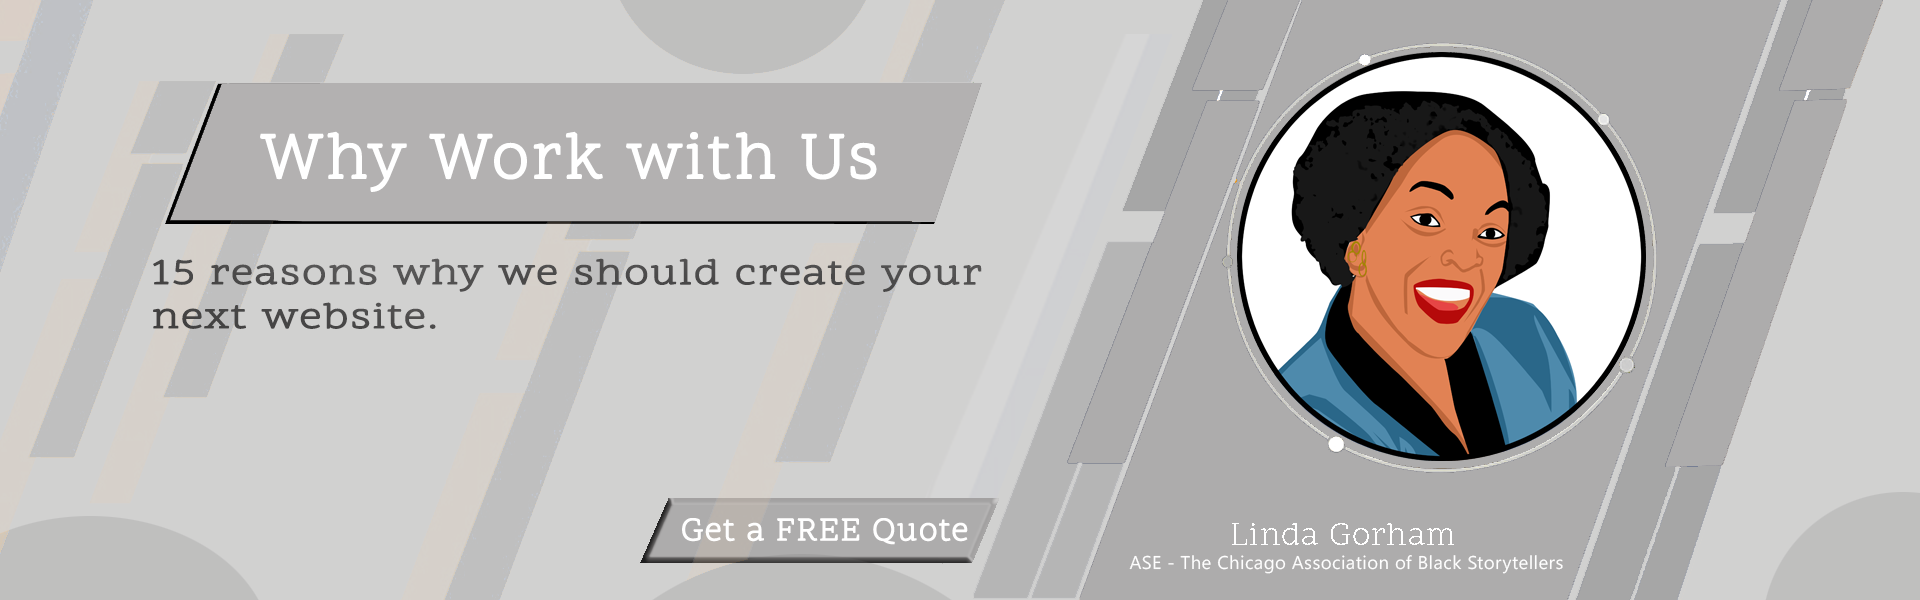 aevinteractive - Why Work with Us